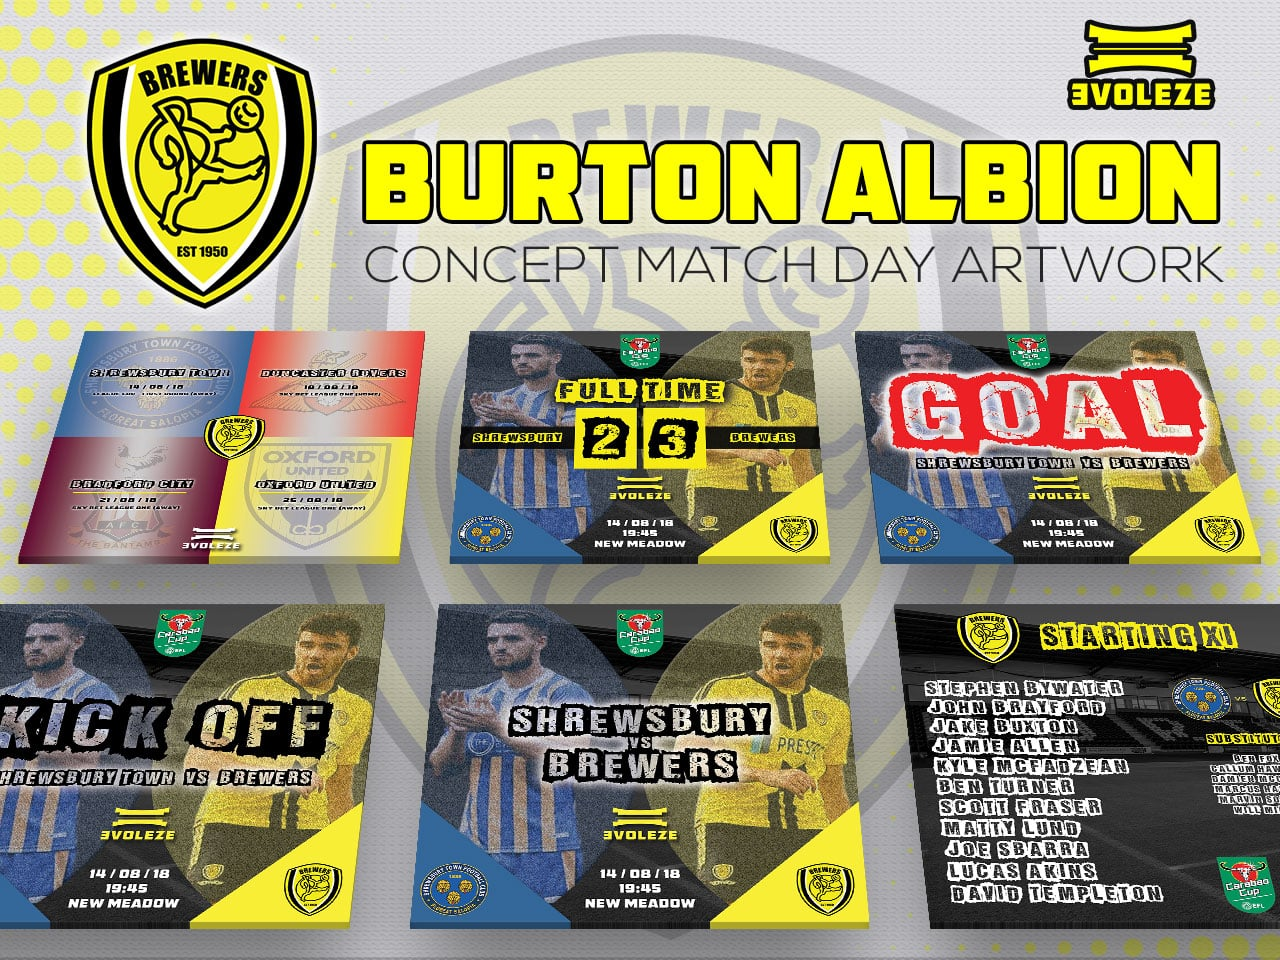 burton albion match day artwork set